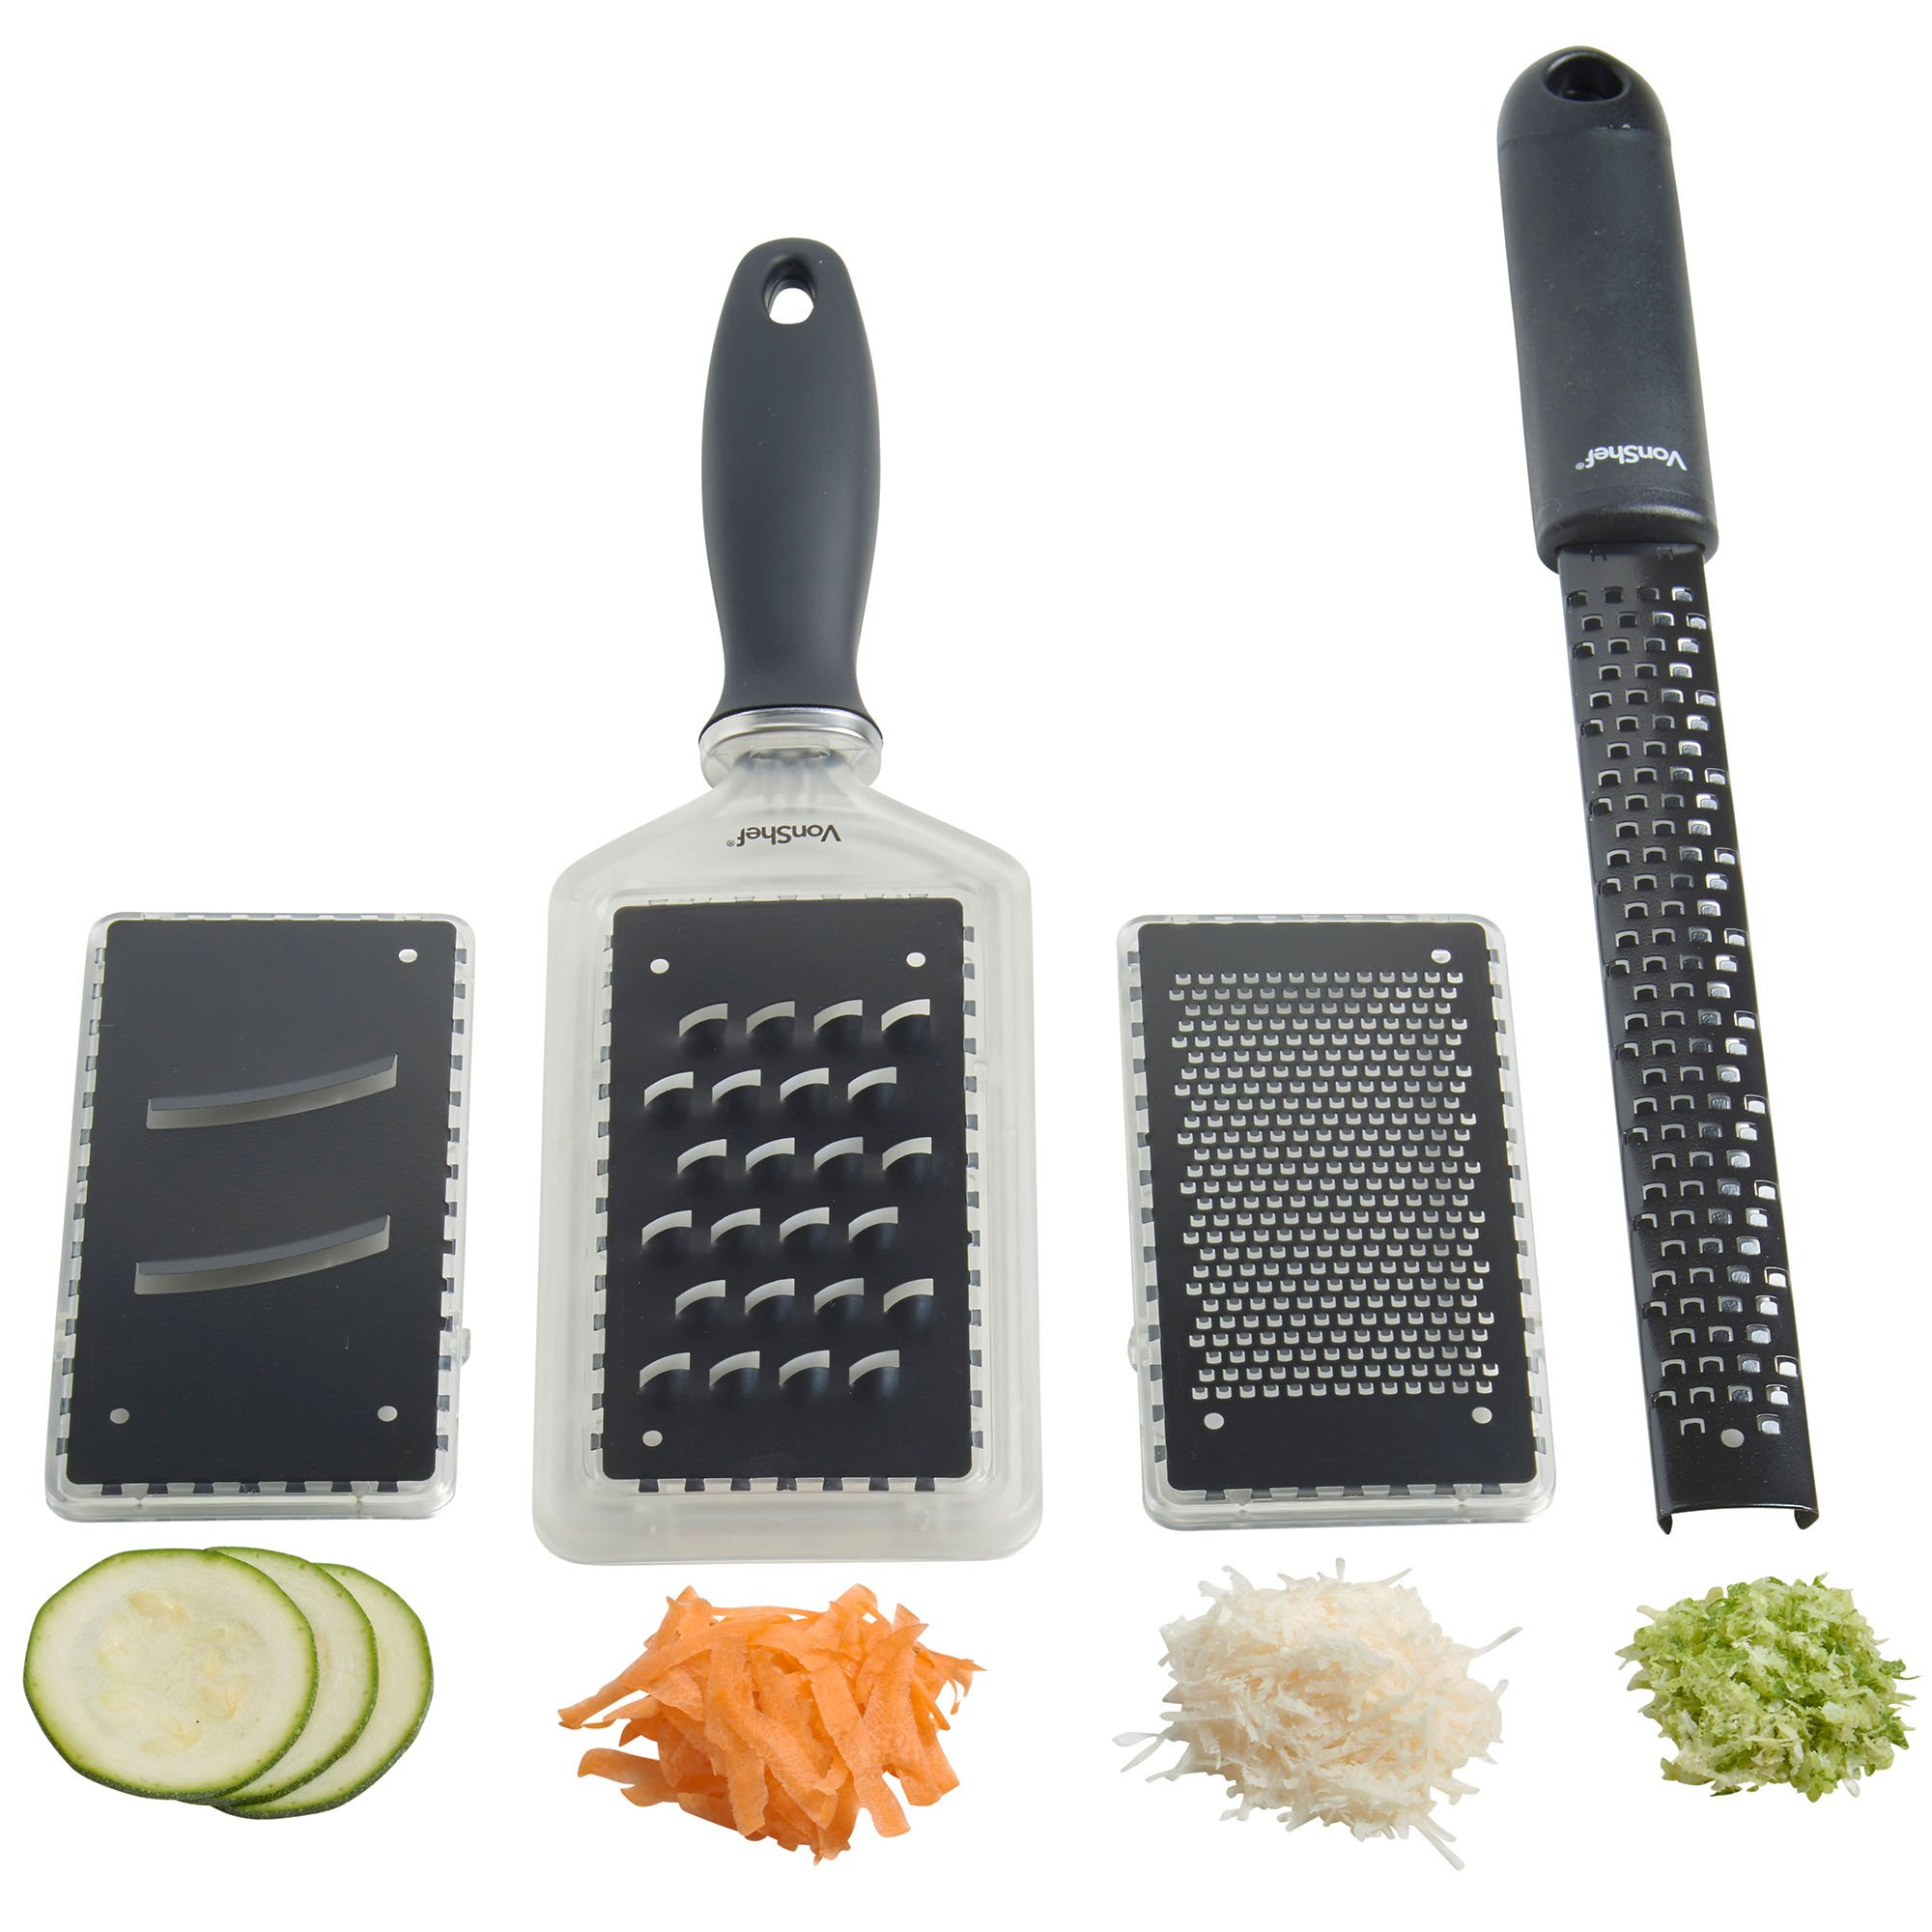 VonShef 4 Piece Cheese Grater & Zester Set with Interchangeable Stainless Steel Blades & Protective Cover